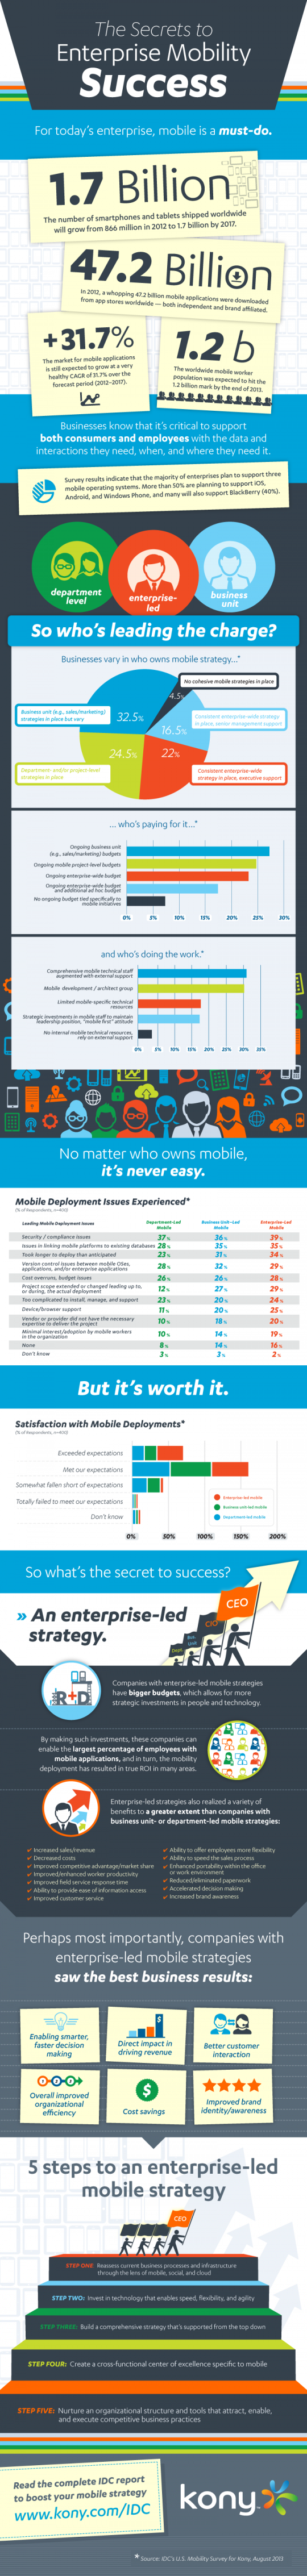 The Secrets to Enterprise Mobility Success